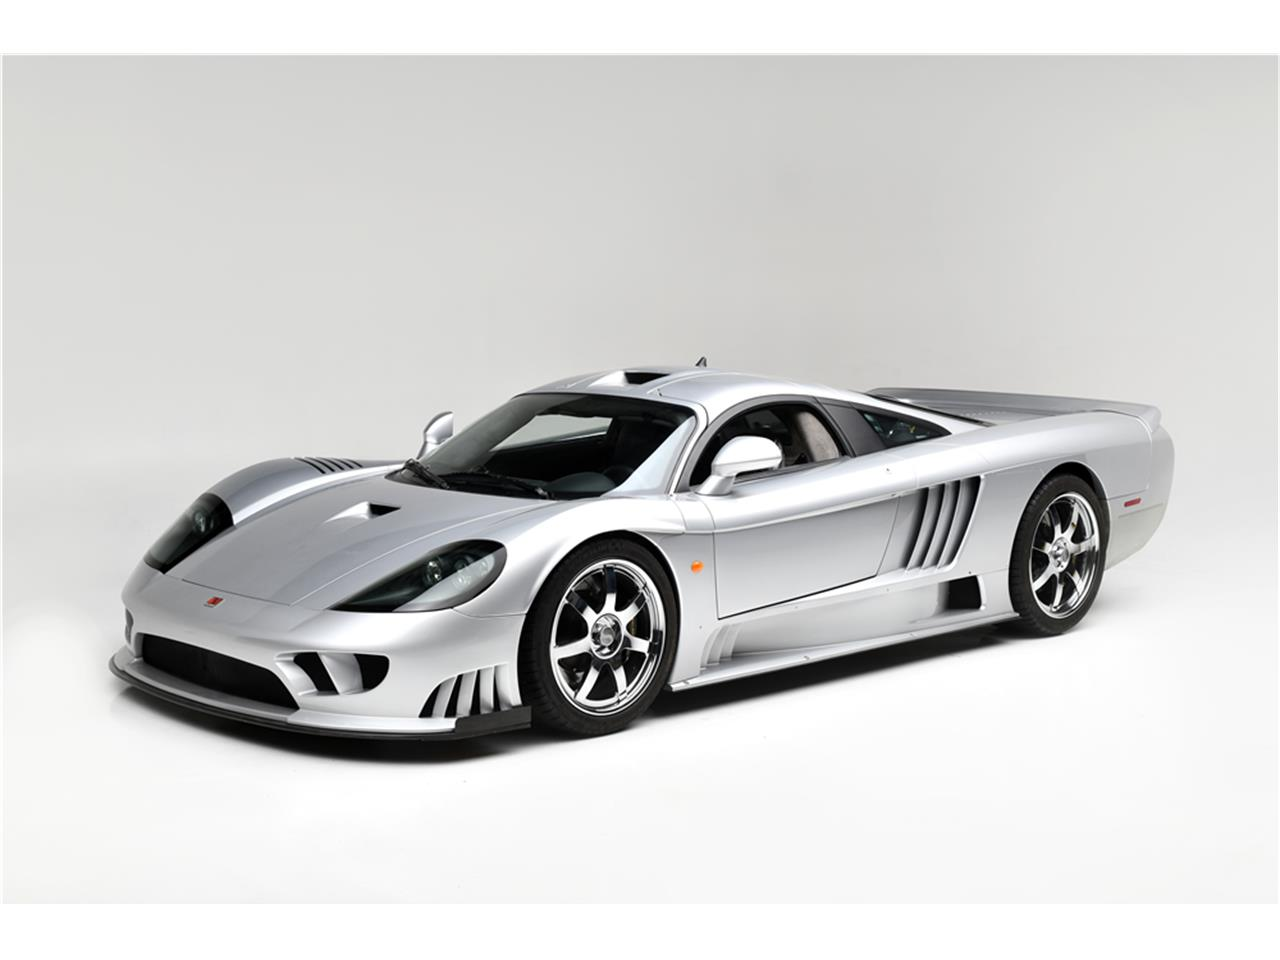 Saleen S7 For Sale >> 2005 Saleen S7 For Sale Classiccars Com Cc 1175532